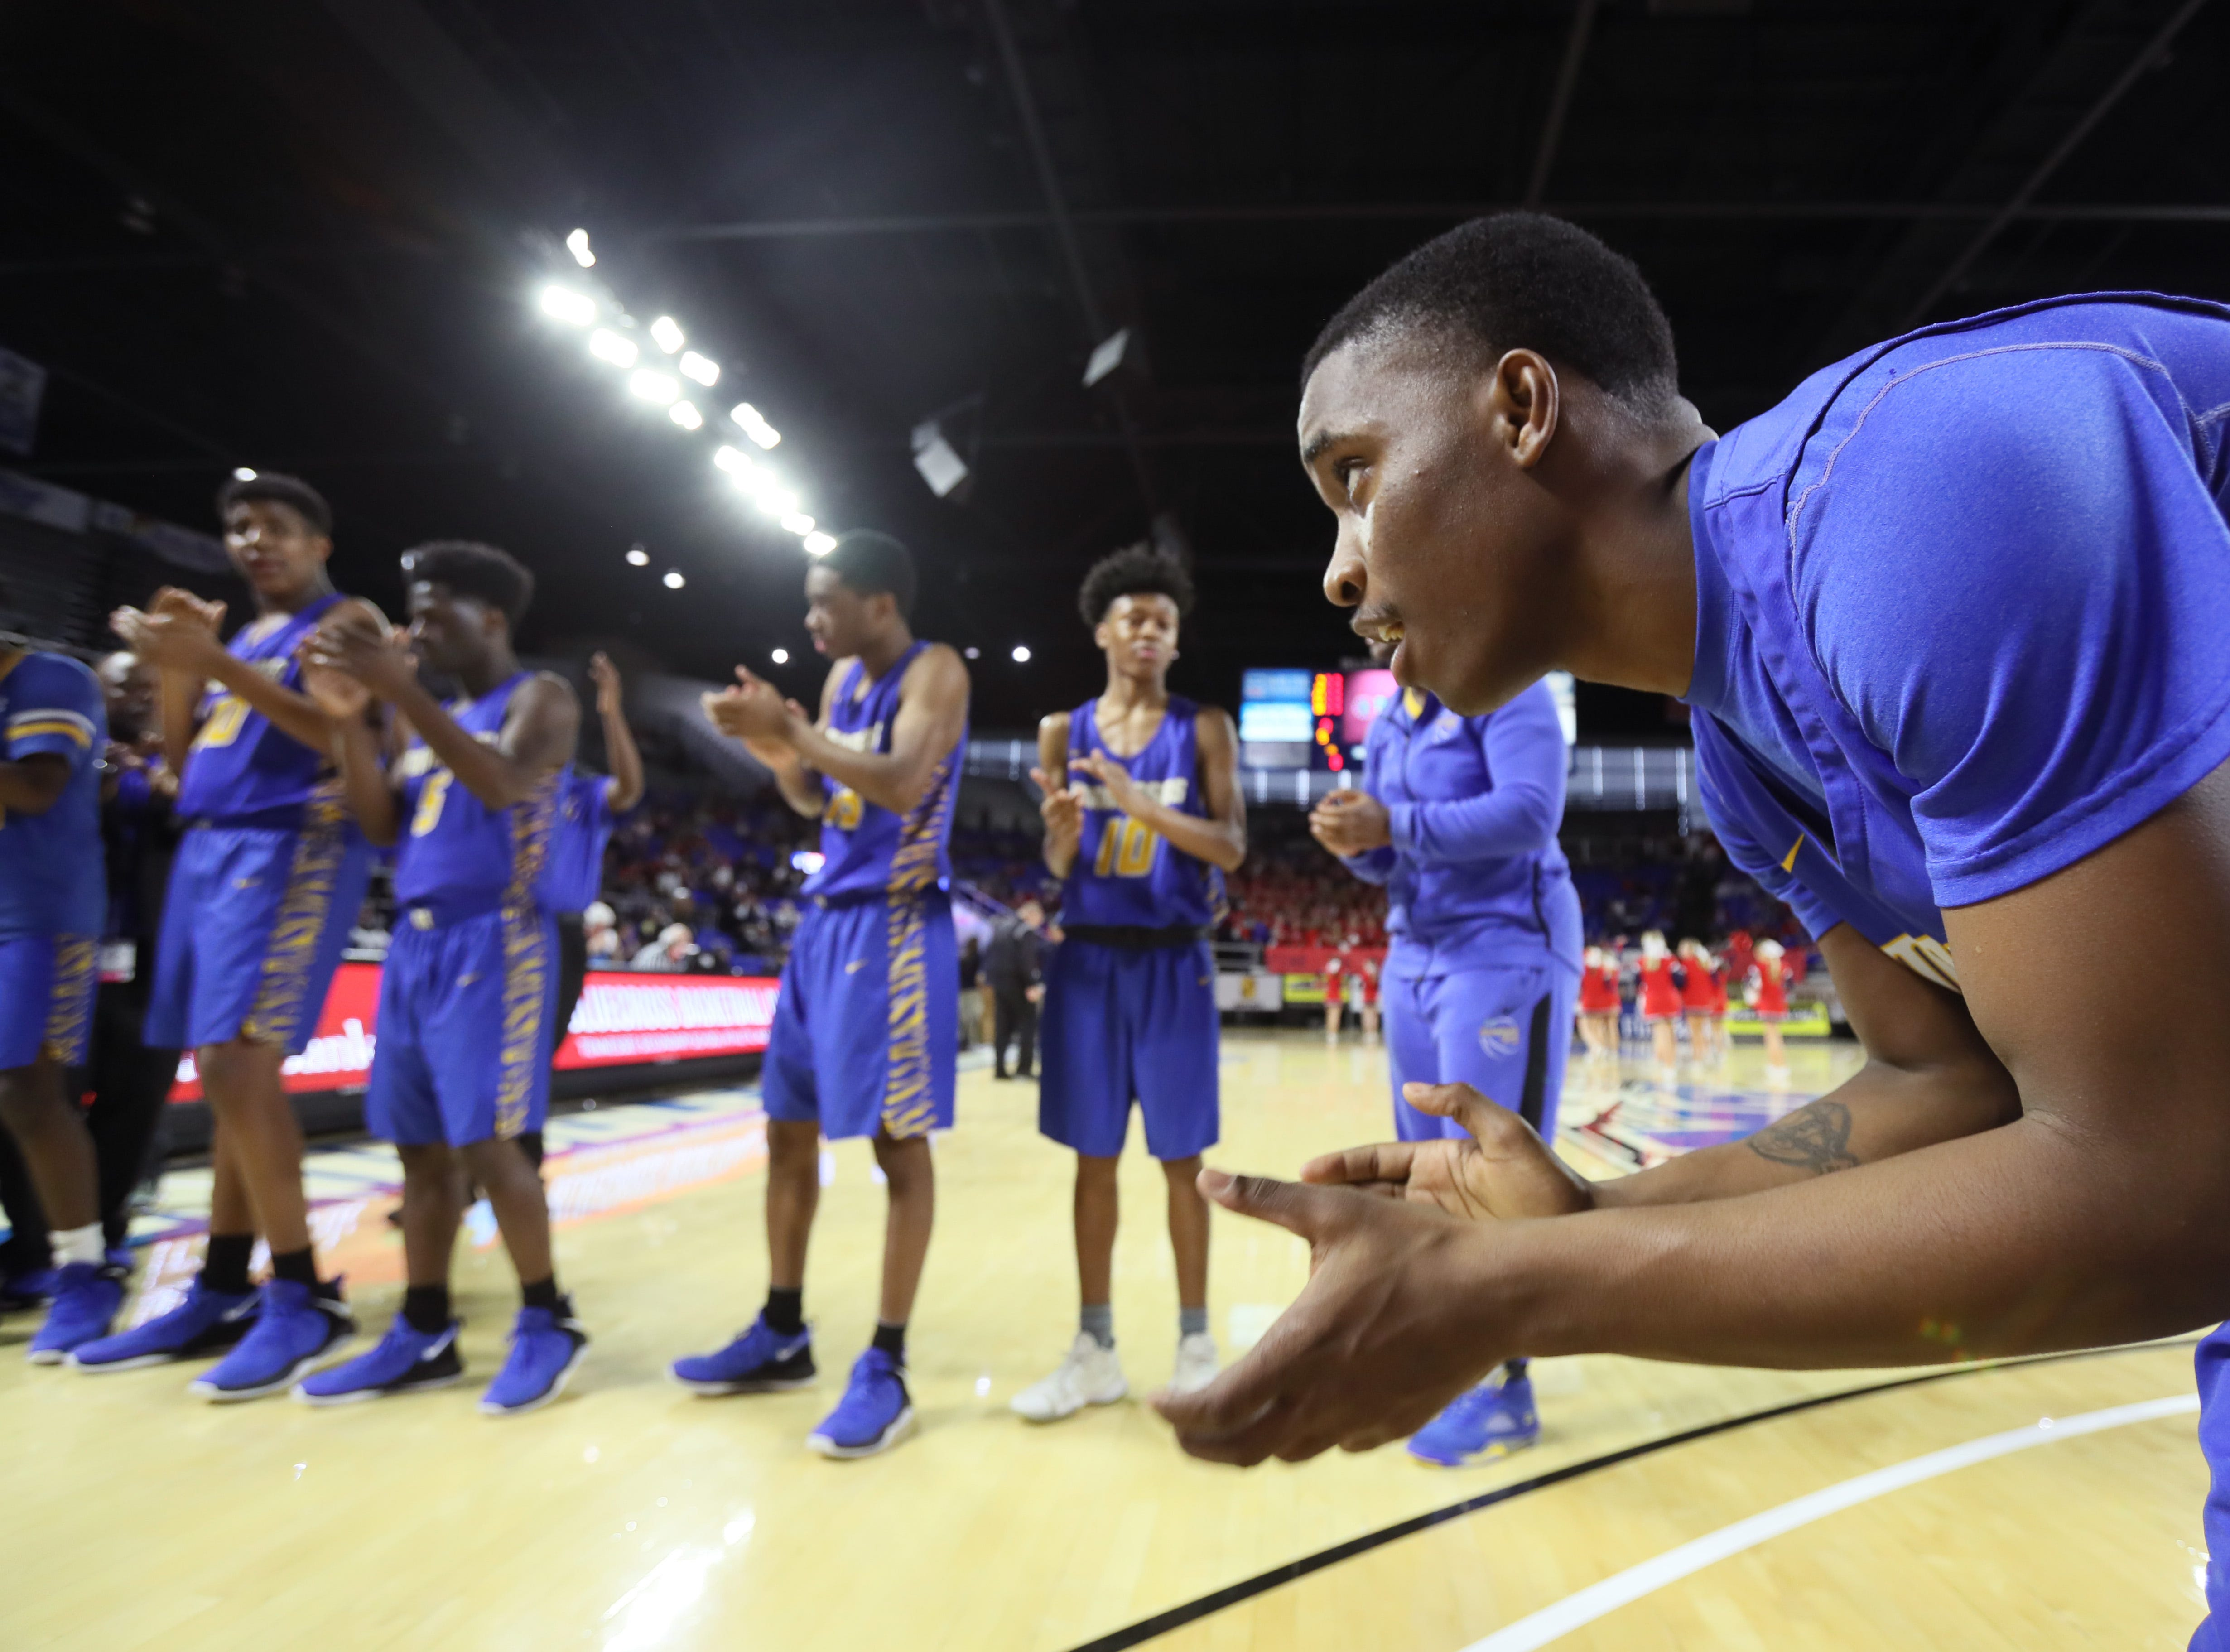 Manassas' Devin Washington claps on his teammates as they are introduced before they take on Columbia Academy during the TSSAA Division I basketball state tournament at the Murphy Center in Murfreesboro on Thursday, March 14, 2019